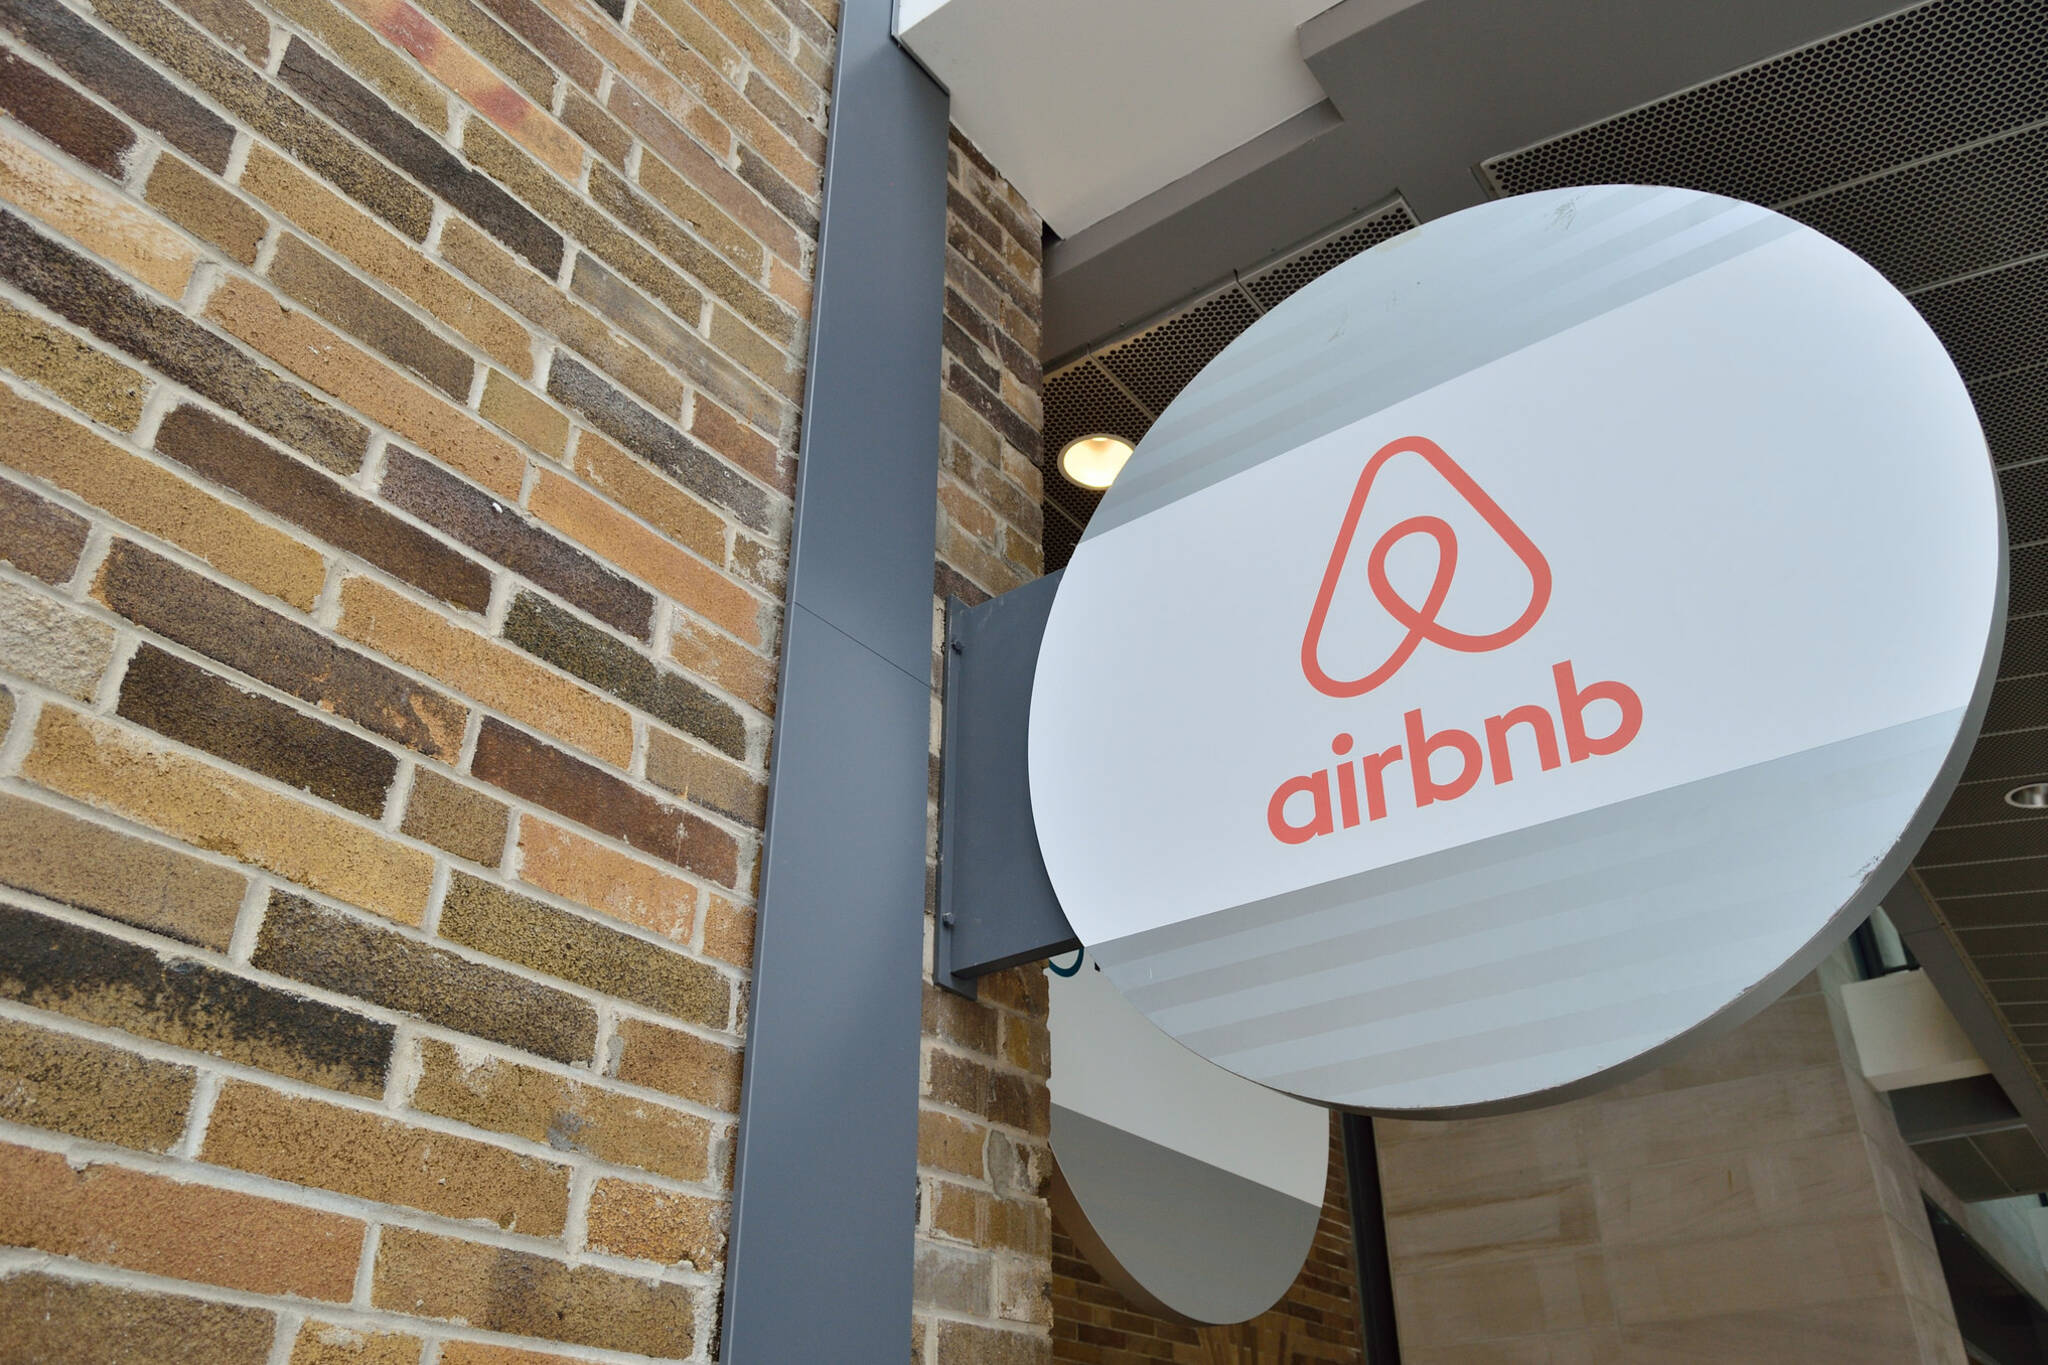 canada airbnb bailout